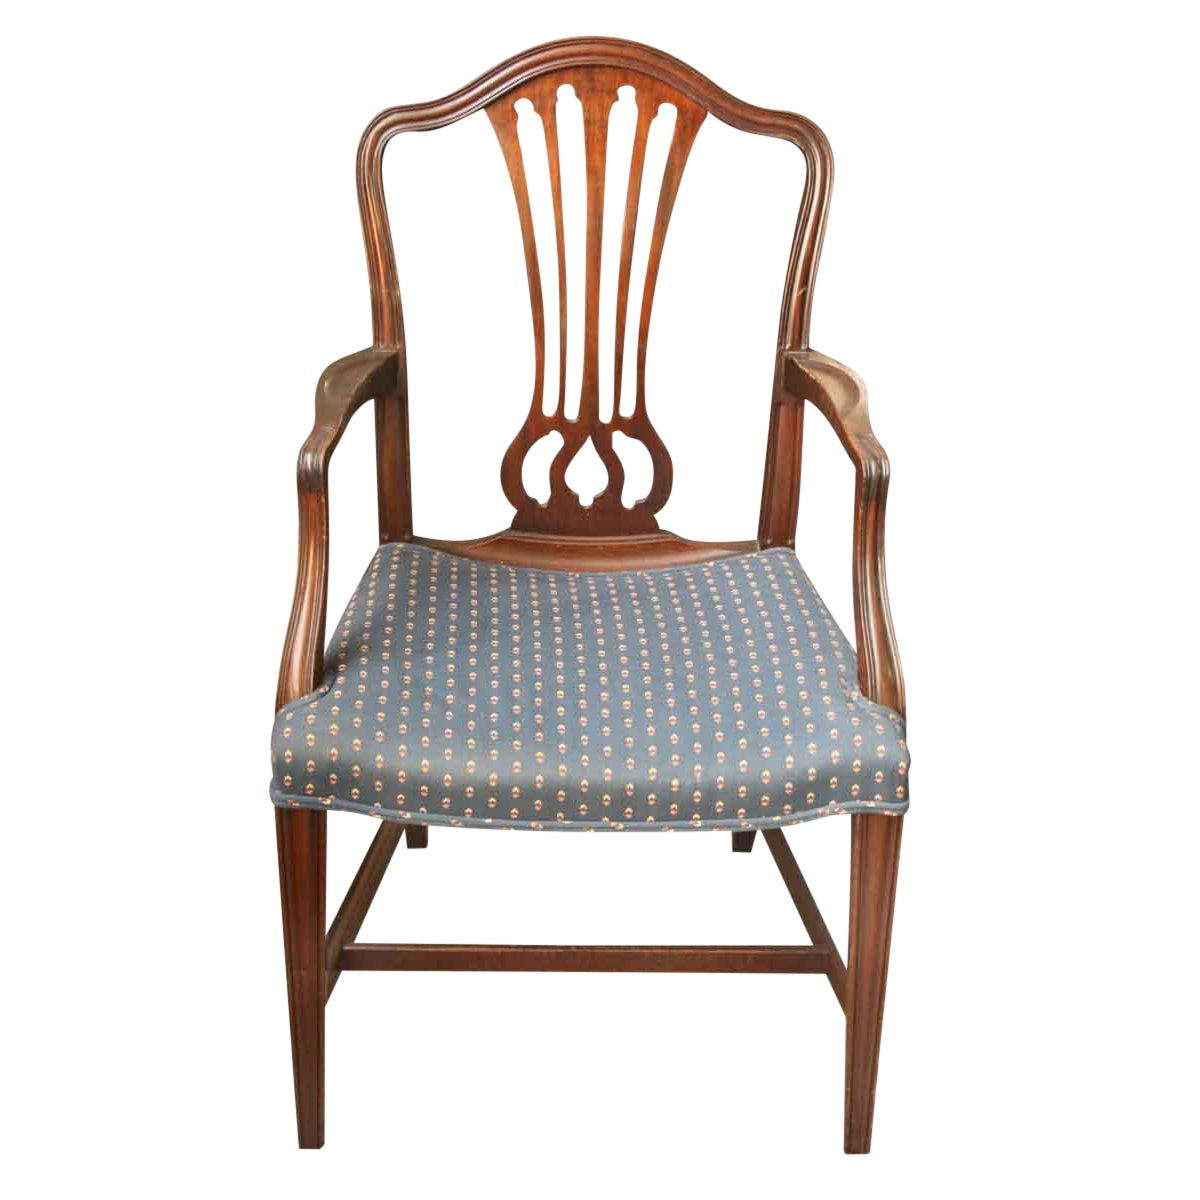 Early 20th century vintage wood frame blue upholstered chair chairish